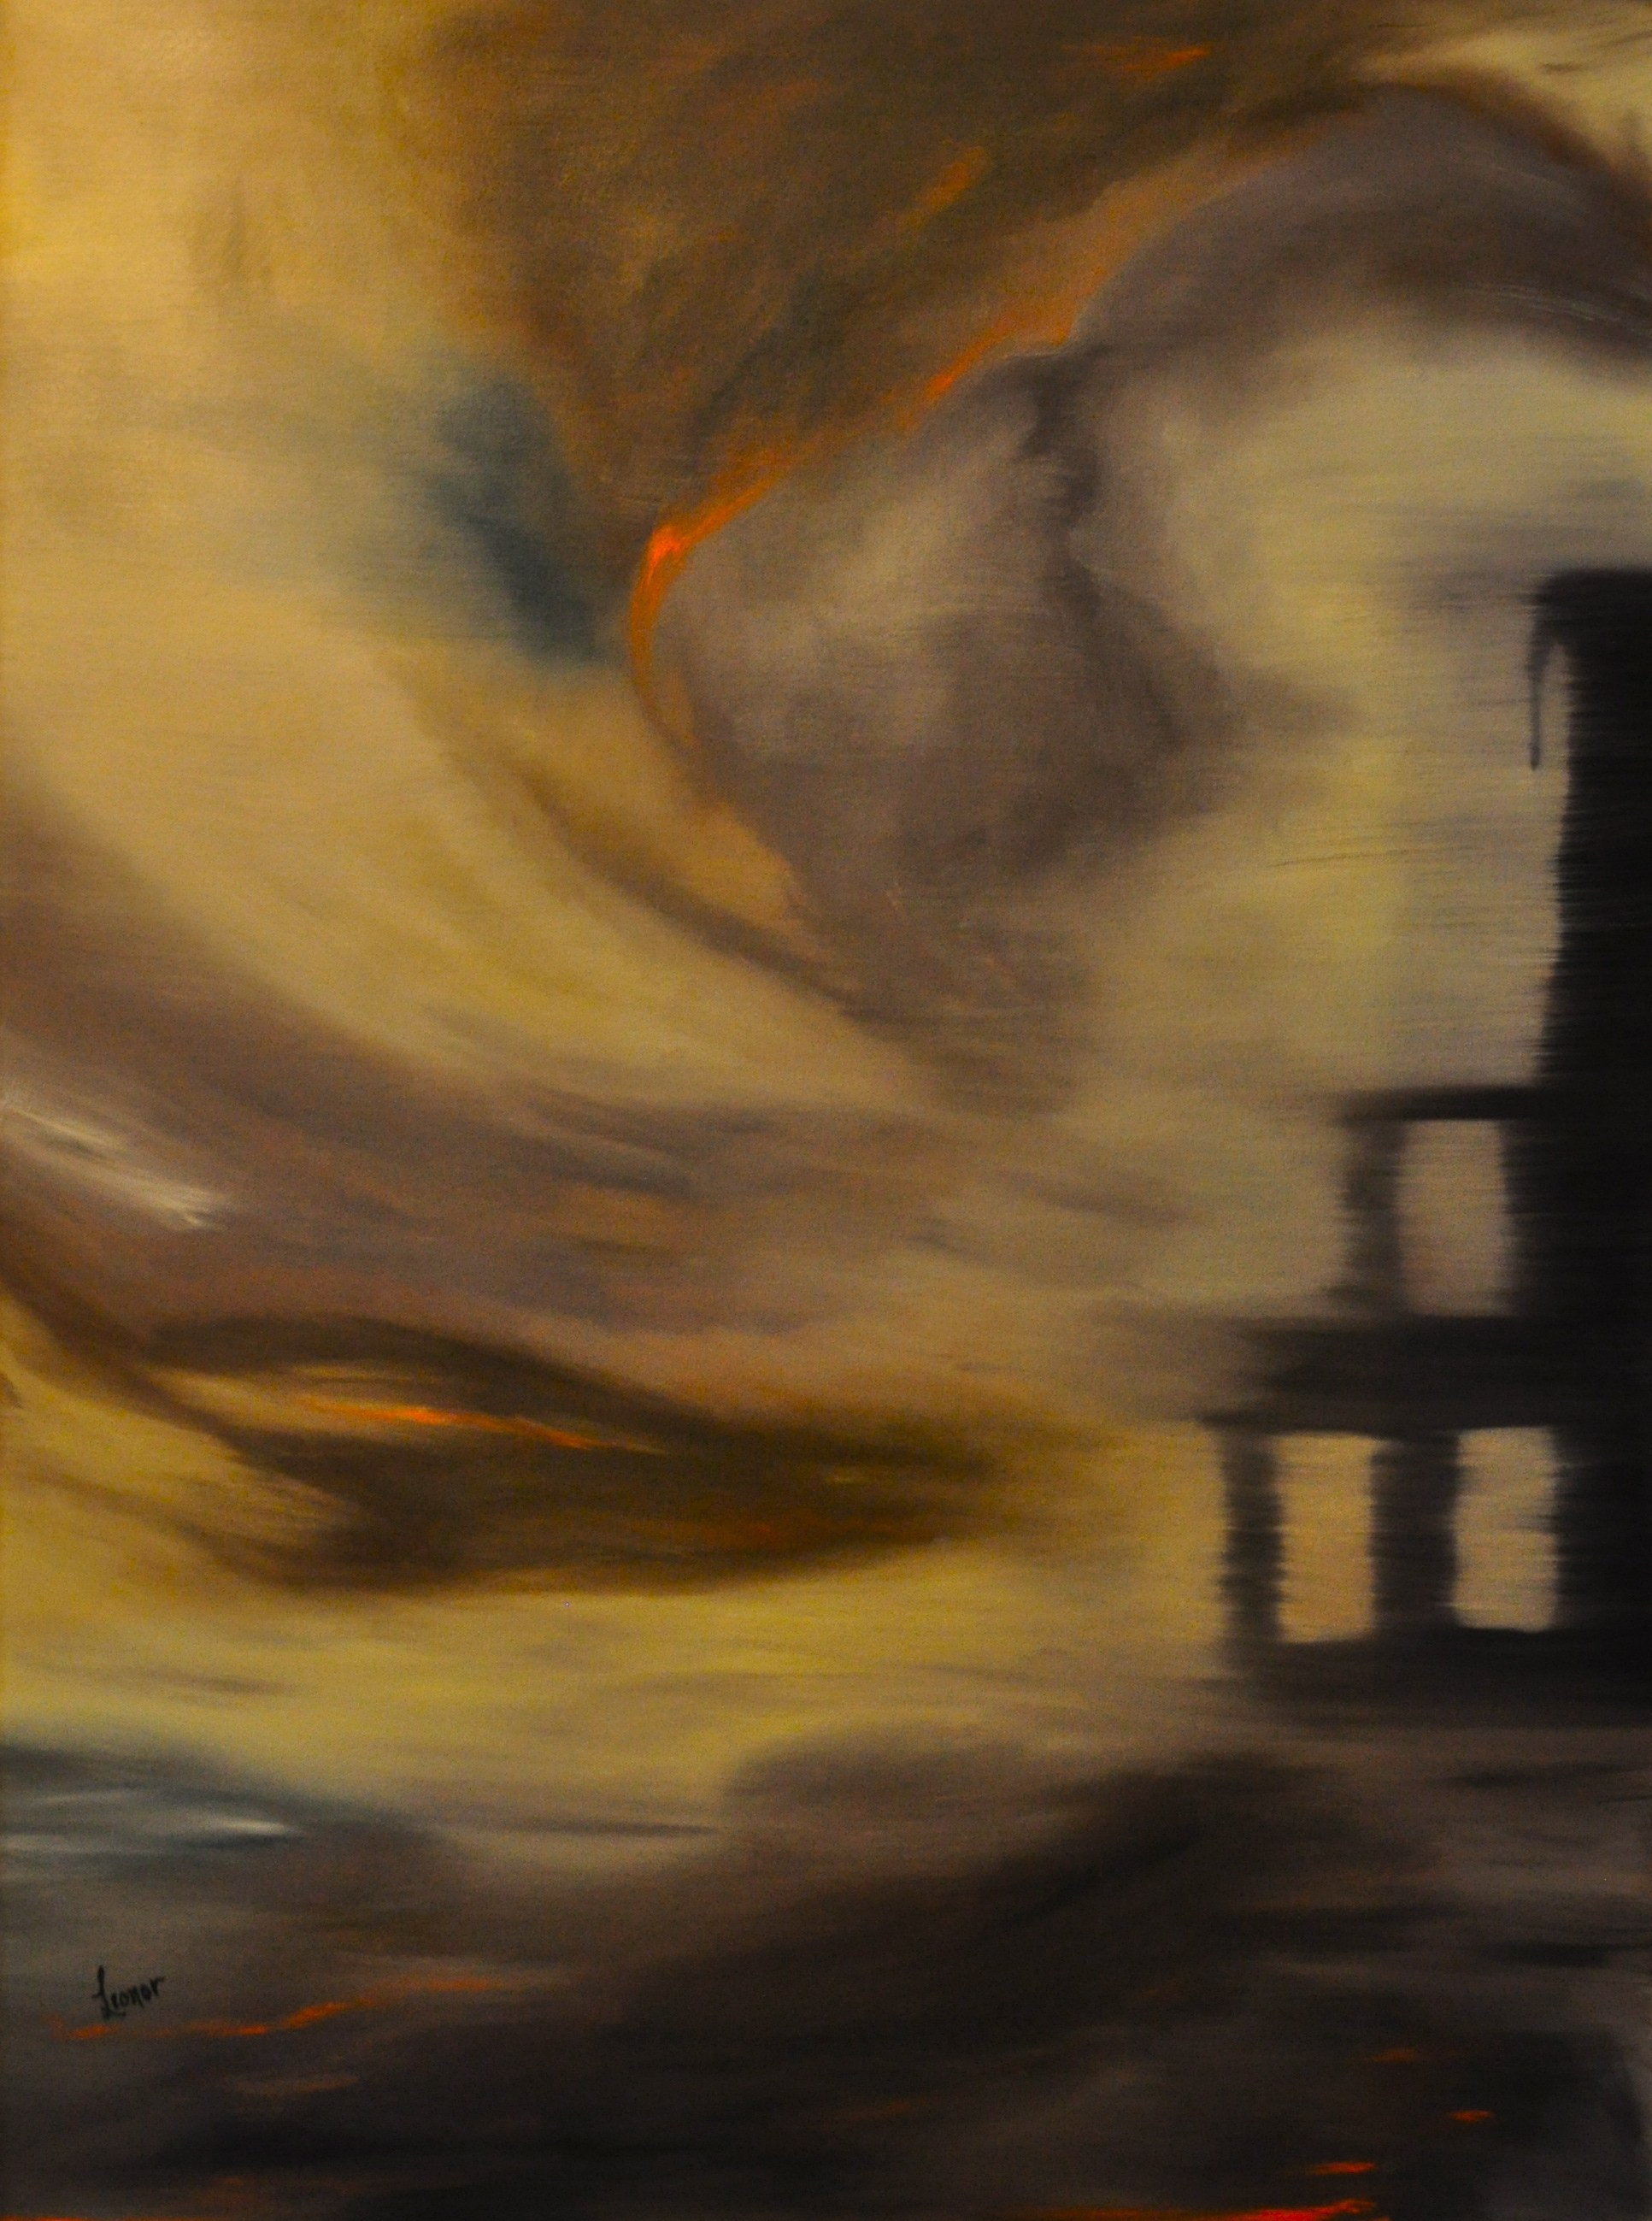 Gernika artwork by Leonor Anthony - art listed for sale on Artplode